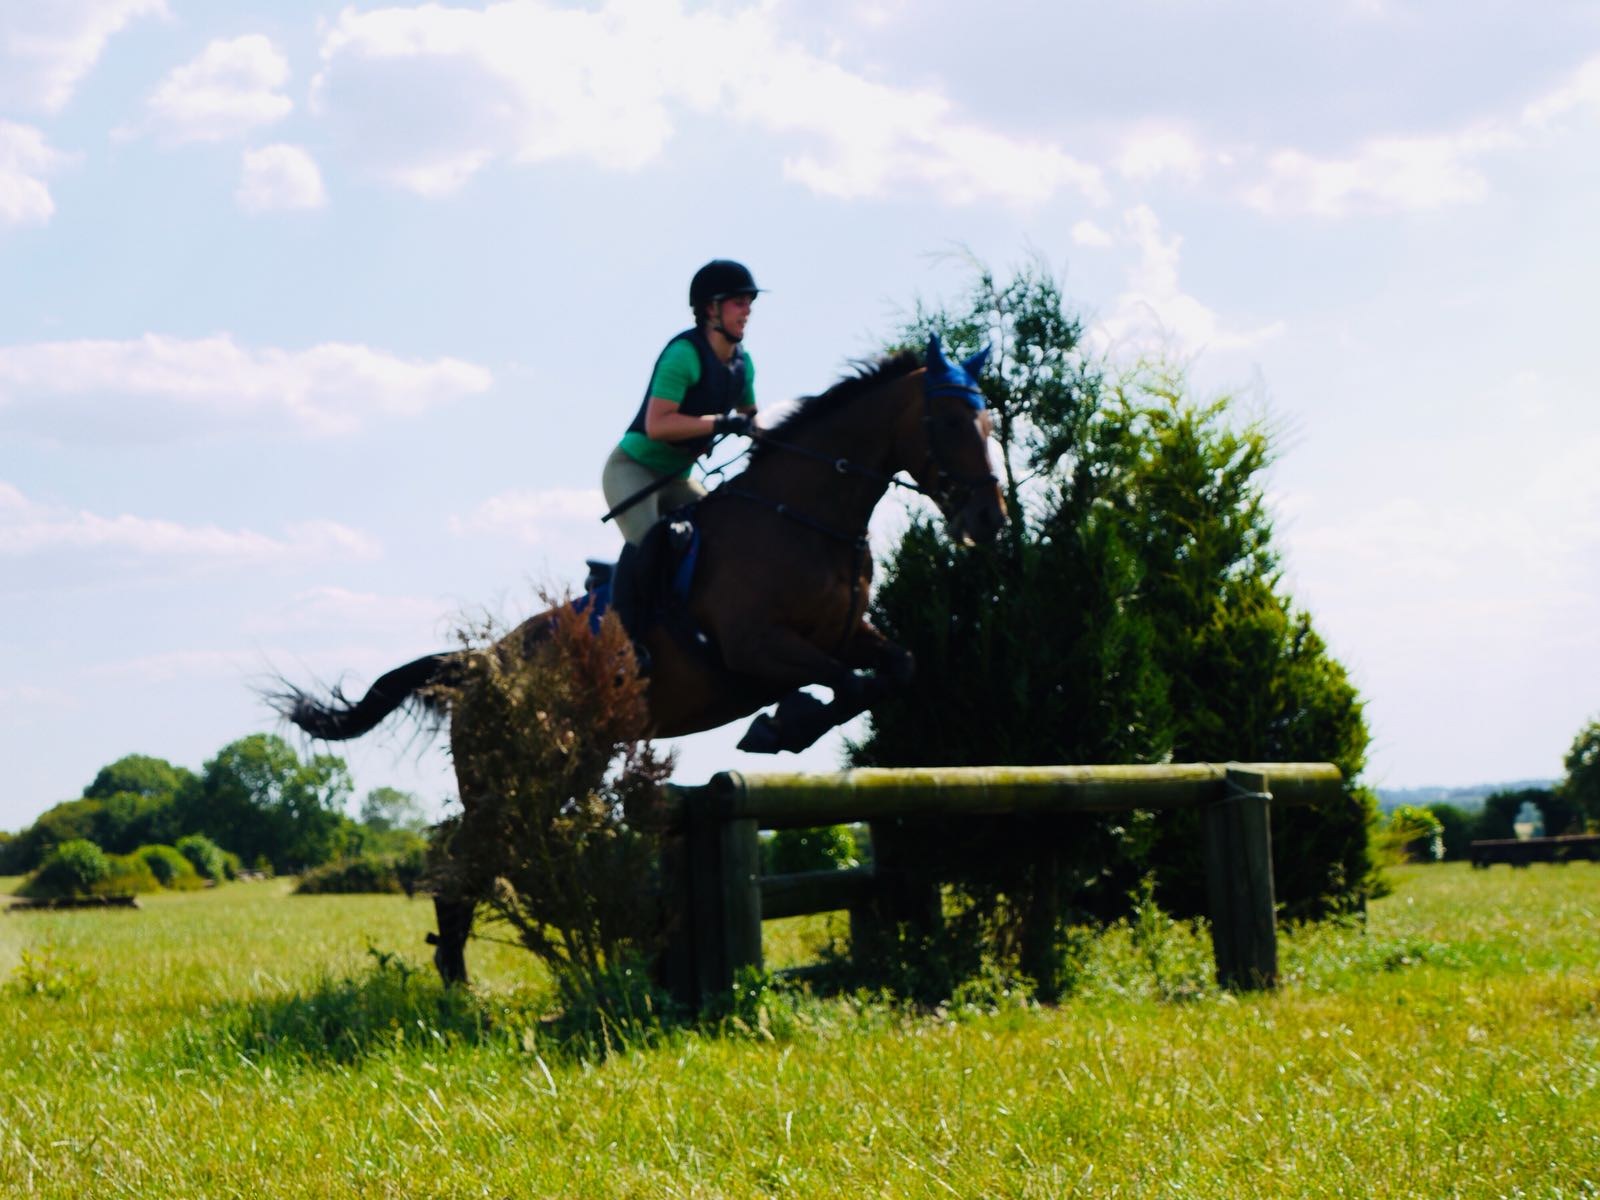 Mia the SuperGroom came to take pictures and I'm so glad she got this one! #weargreenforjonty